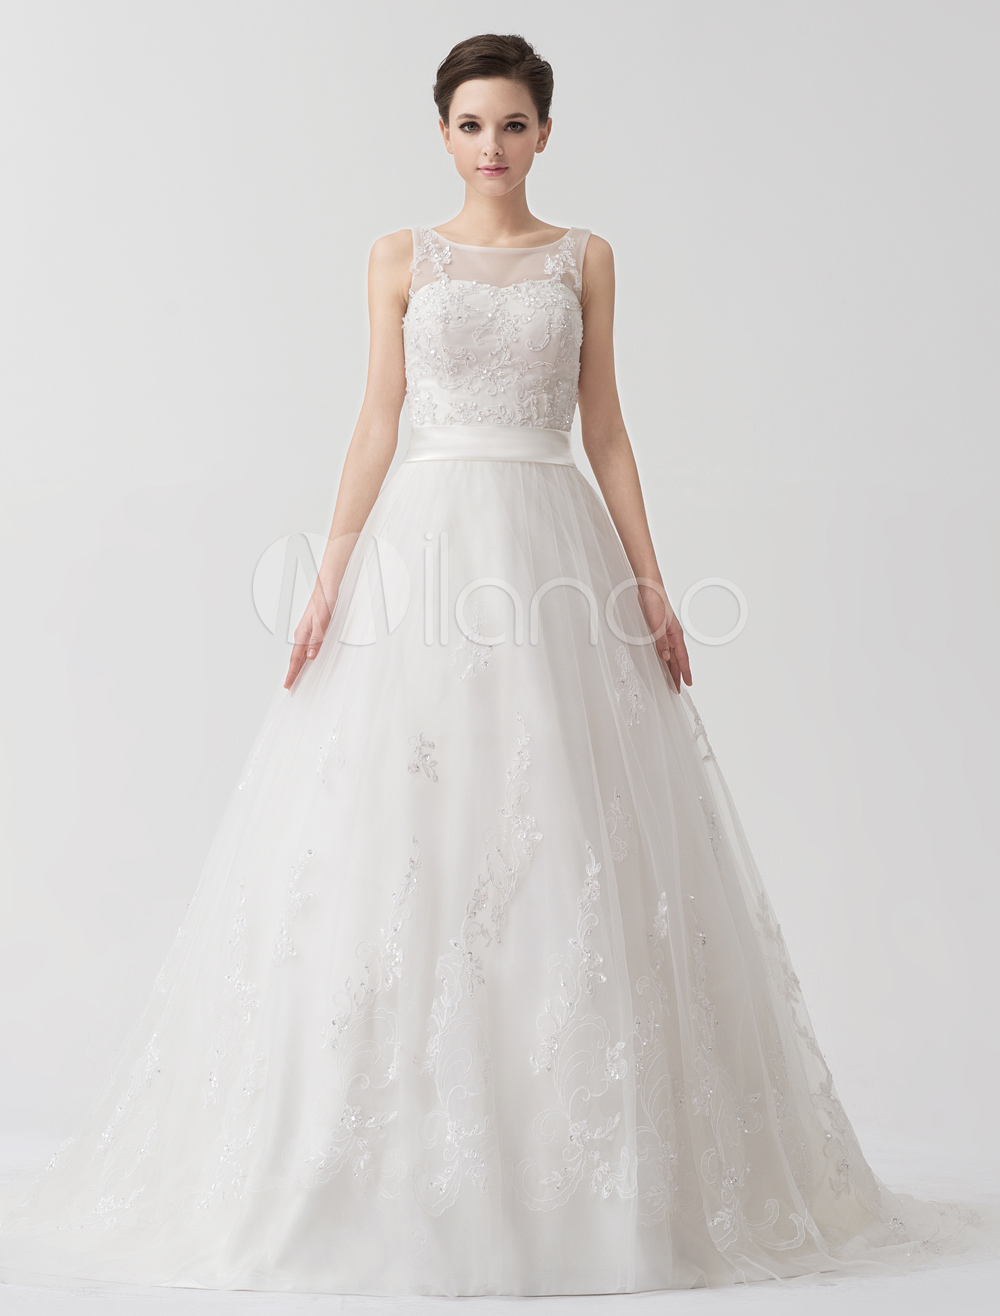 Ivory A-line Jewel Neck Sash Tulle Court Train Bride's Wedding Dress